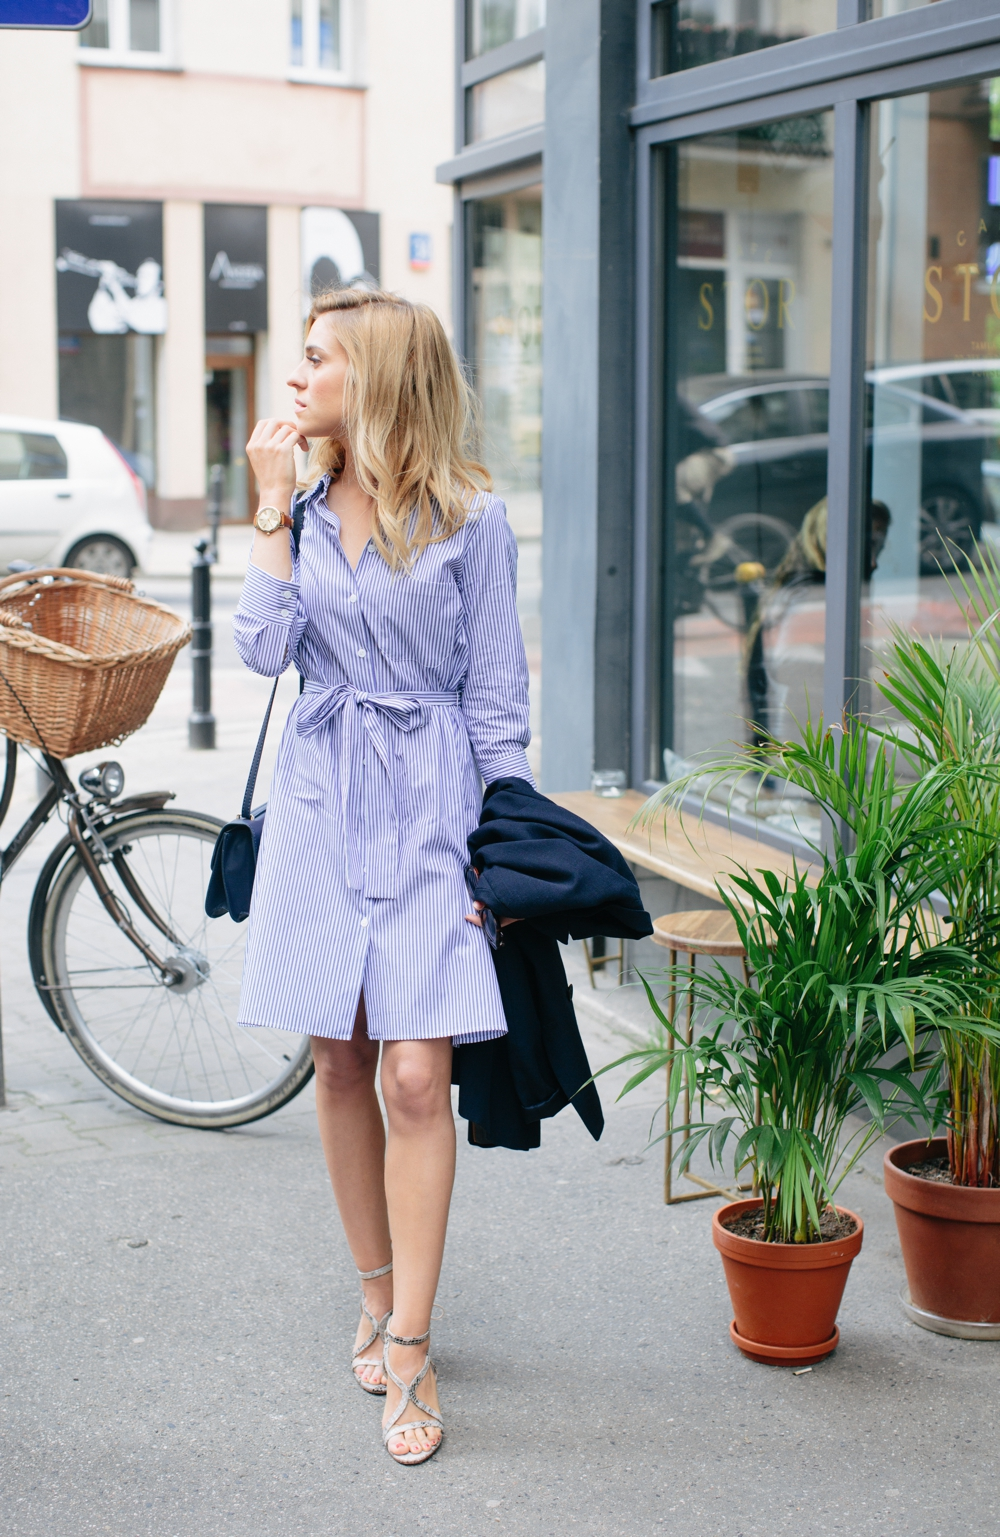 367fb608c4 Katarzyna Tusk is looking super relaxed in this cute striped shirt dress  from Zara. A